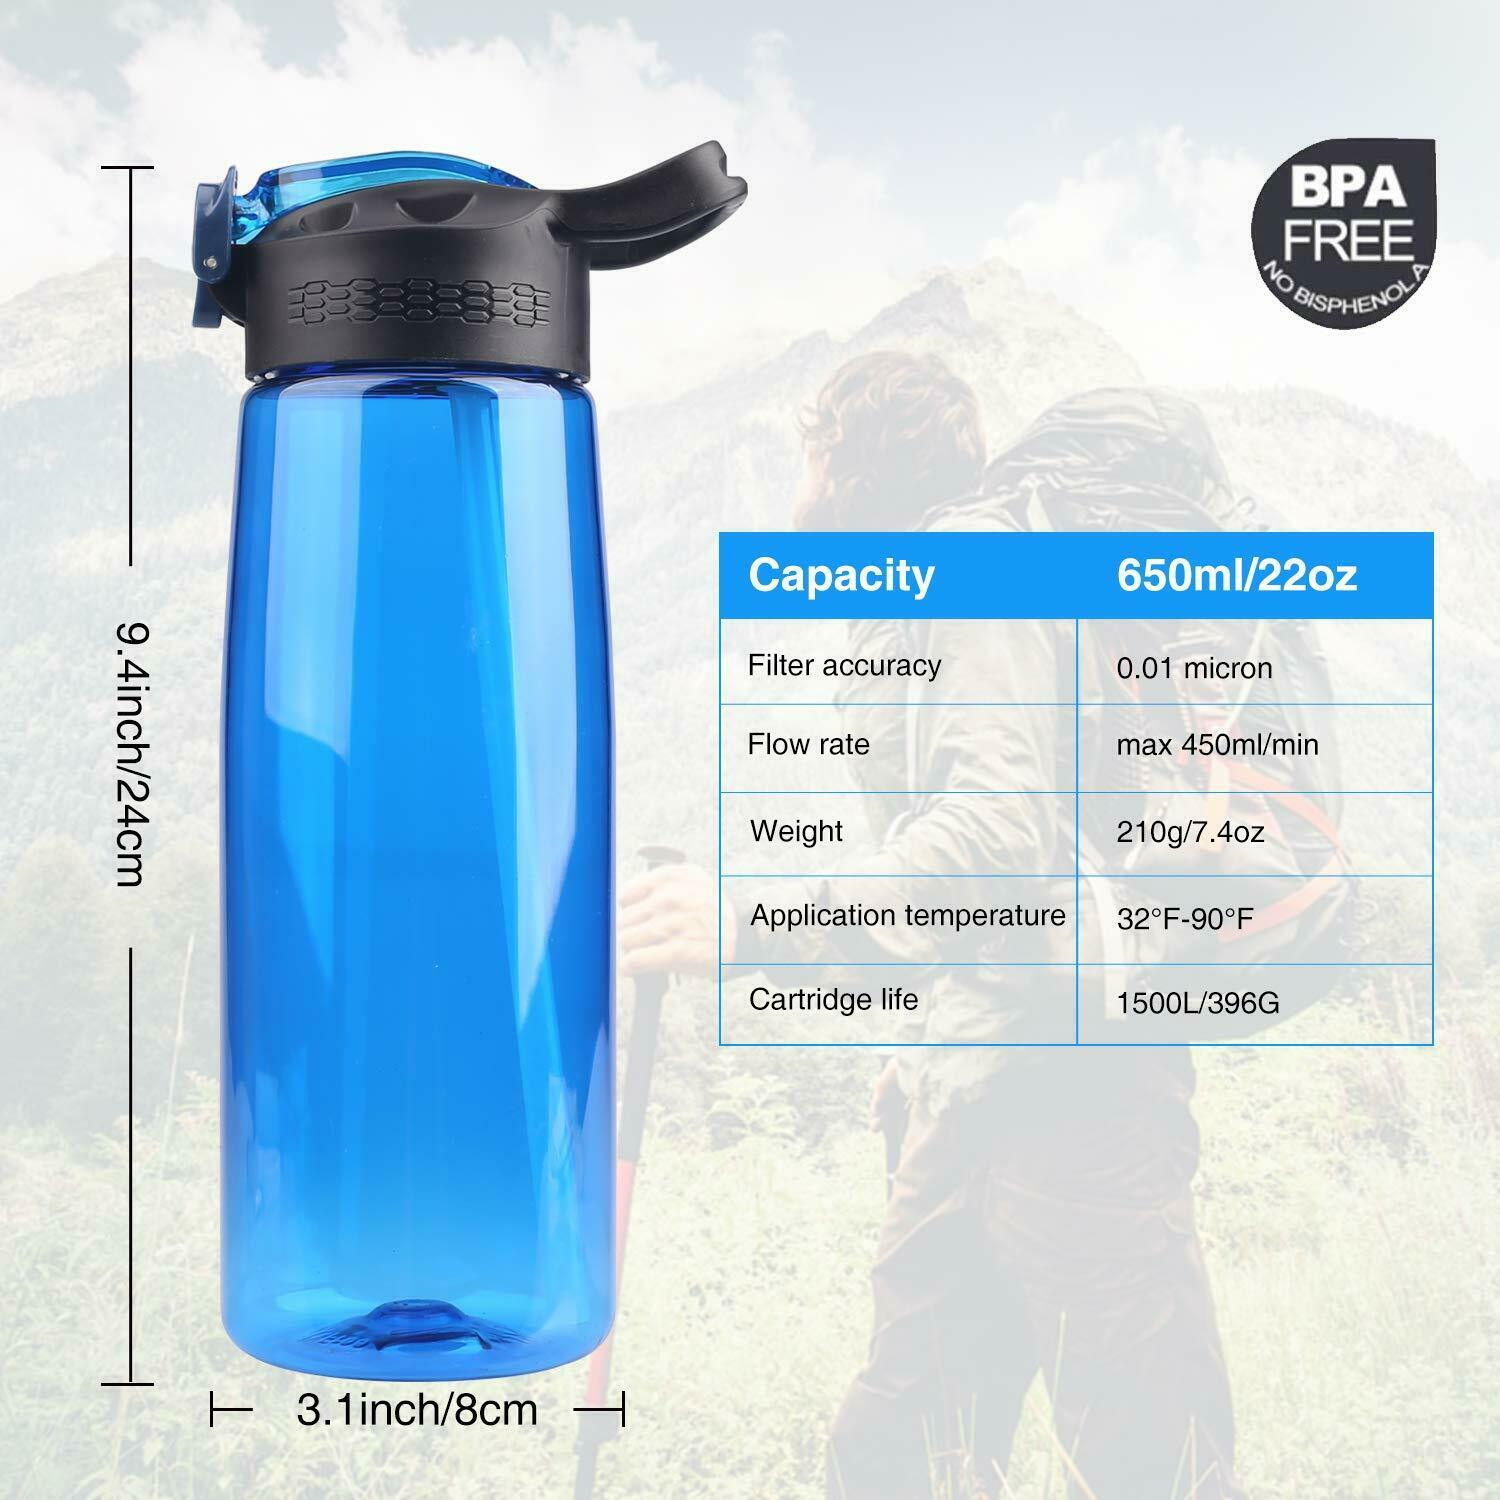 2pcs Portable Water Filter Bottle Purifier Emergency Survival Tool for Camping